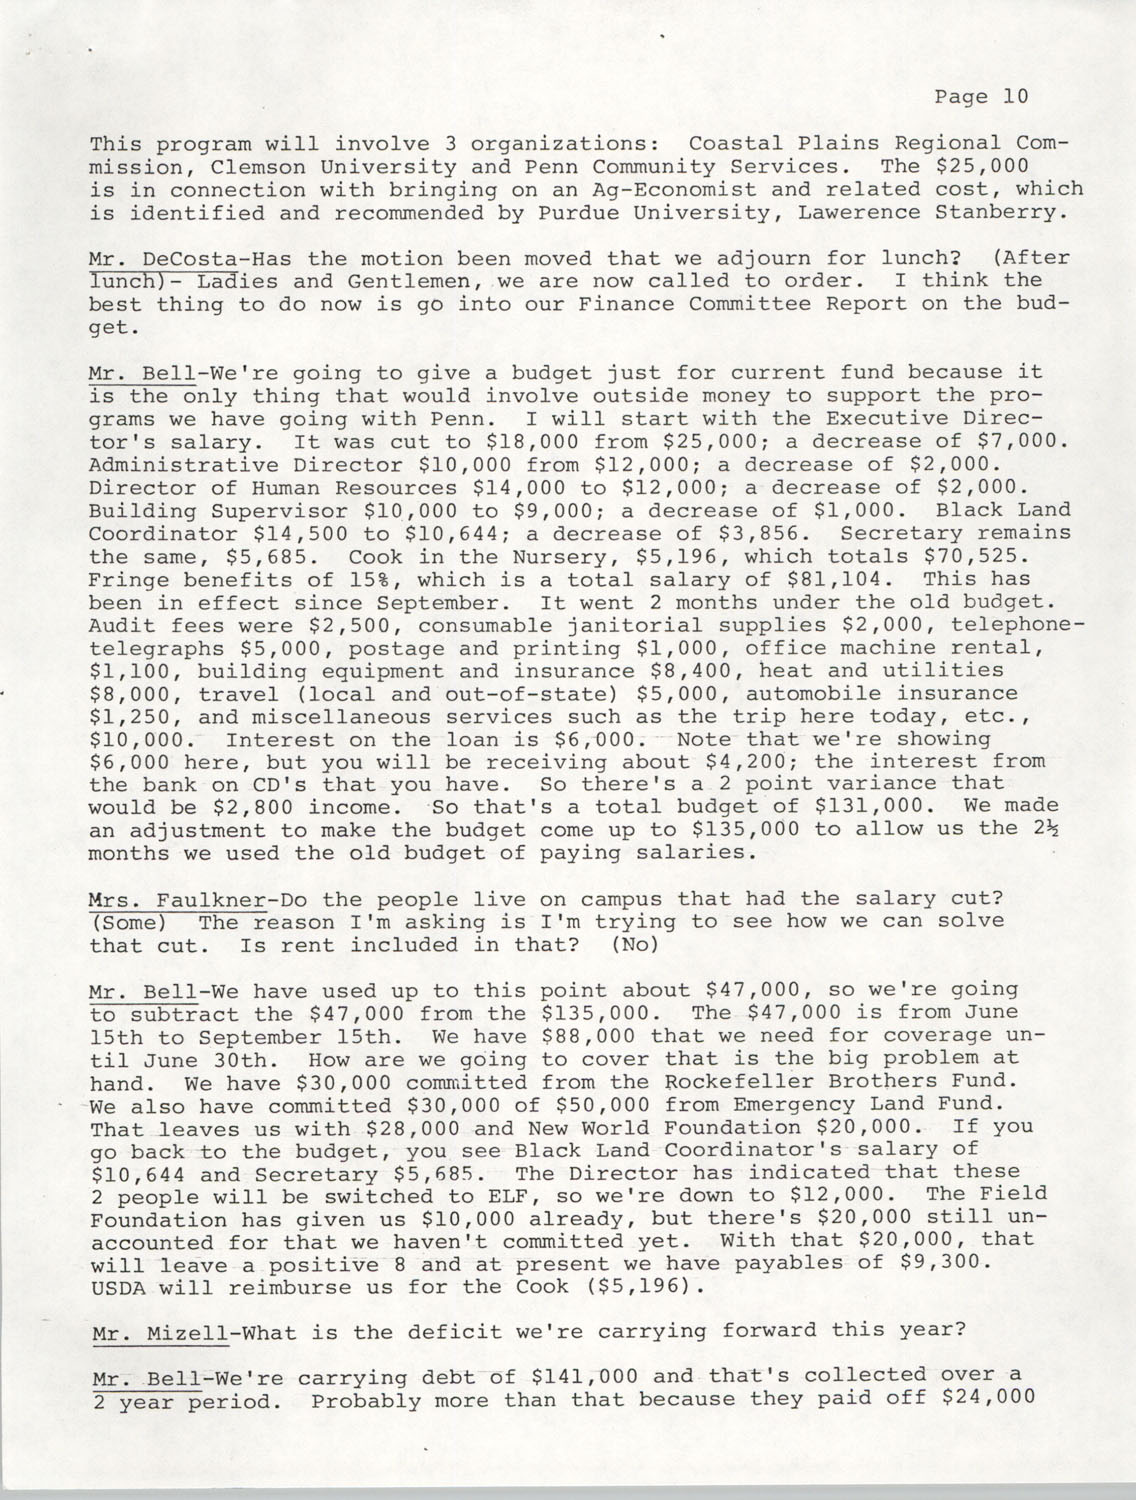 Minutes, Annual Board Meeting, Penn Community Services, October 22, 1977, Page 10